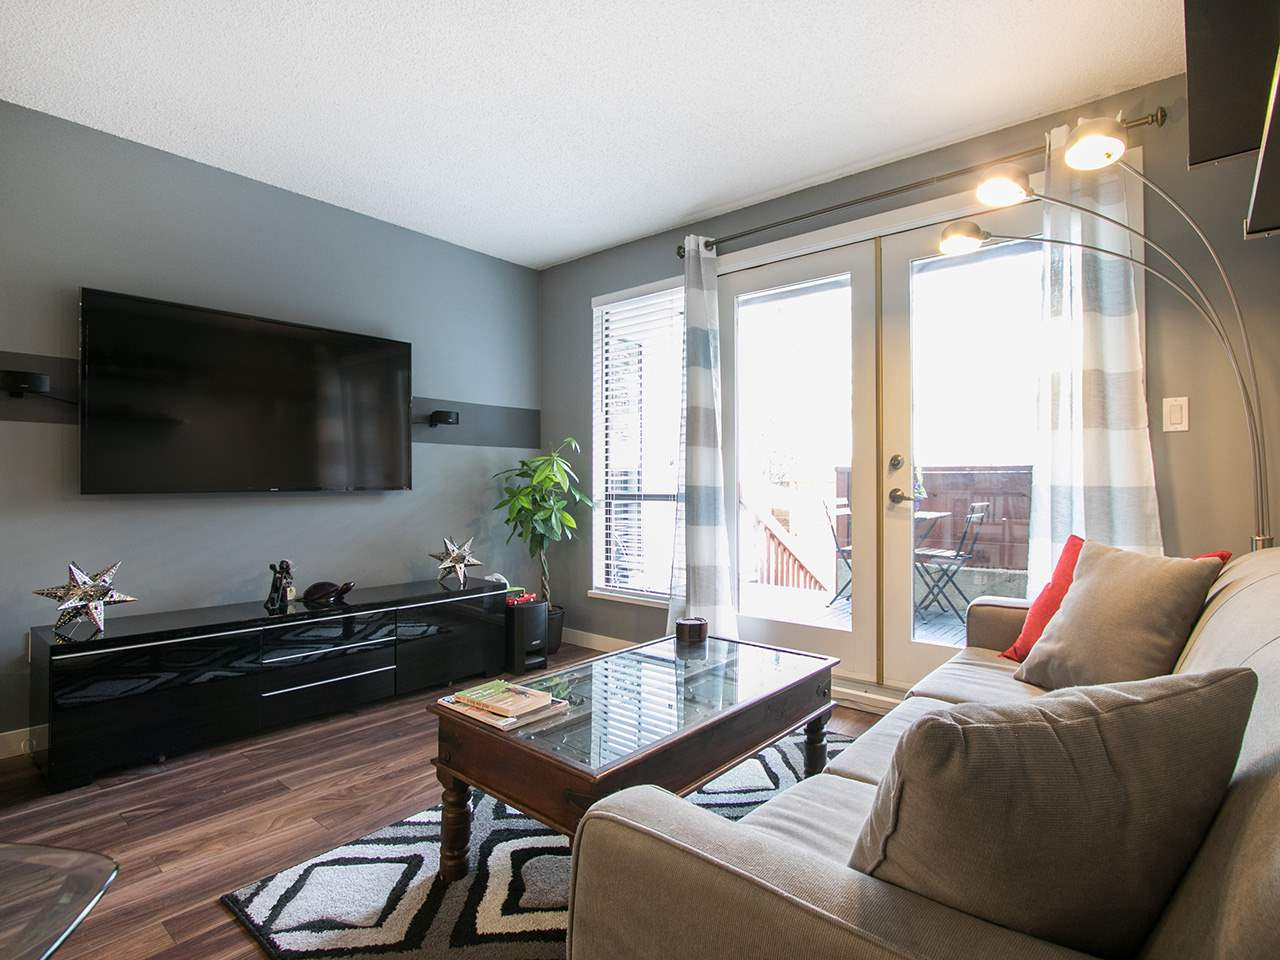 Photo 3: 101 1775 W 10TH AVENUE in Vancouver: Fairview VW Condo for sale (Vancouver West)  : MLS® # R2038742